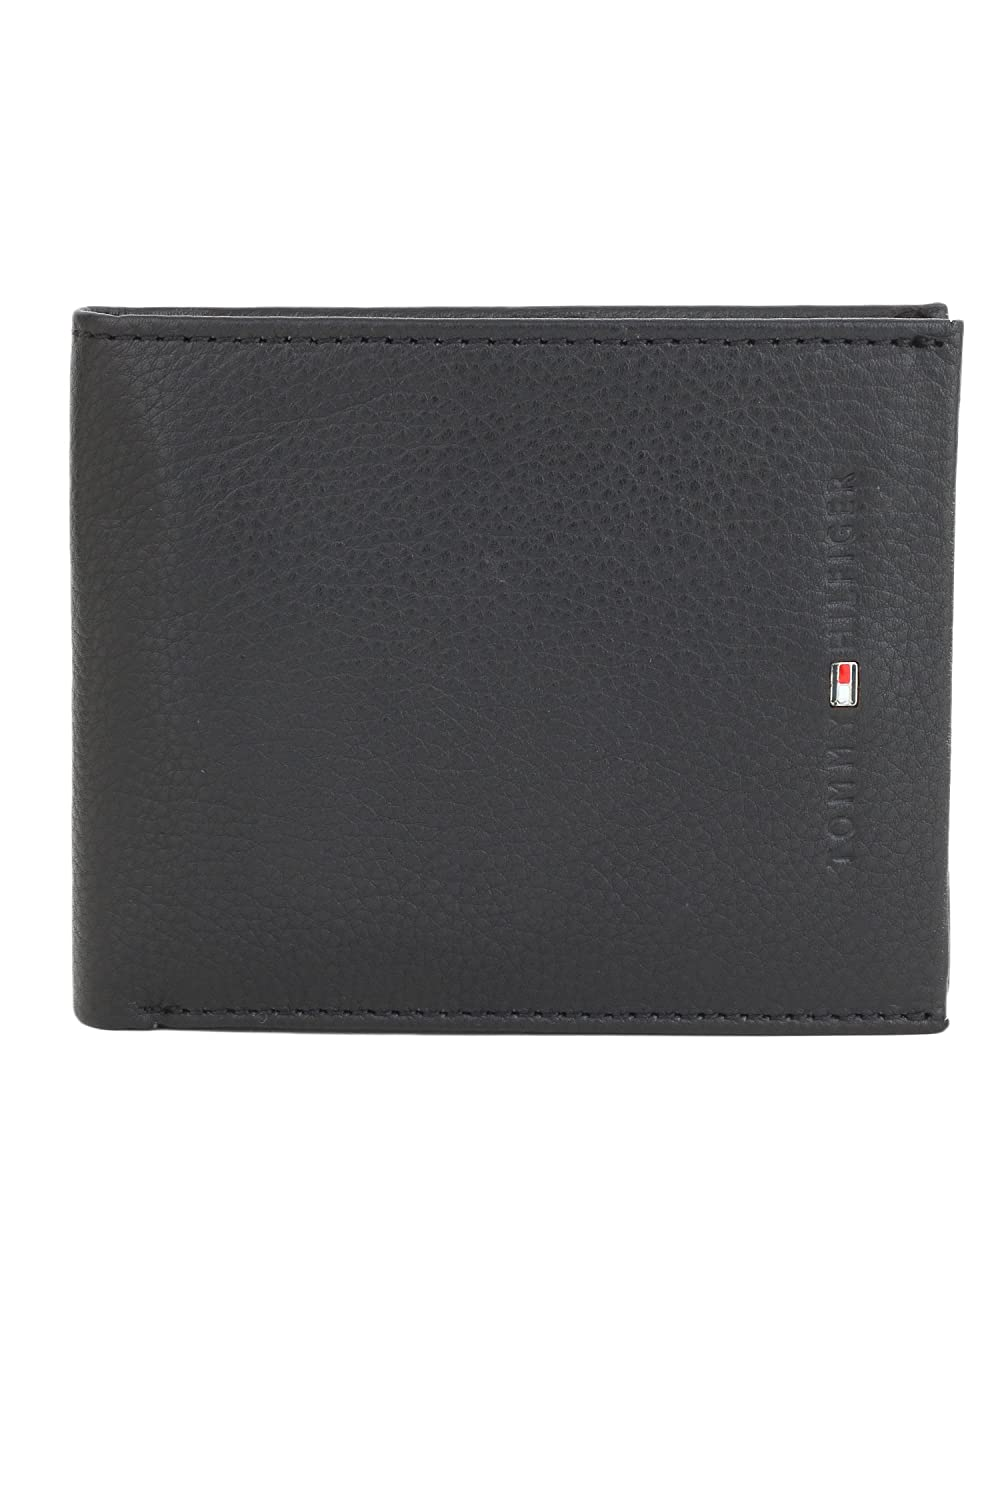 Tommy Hilfiger Shaster Black Men's Wallet (8903496093049)